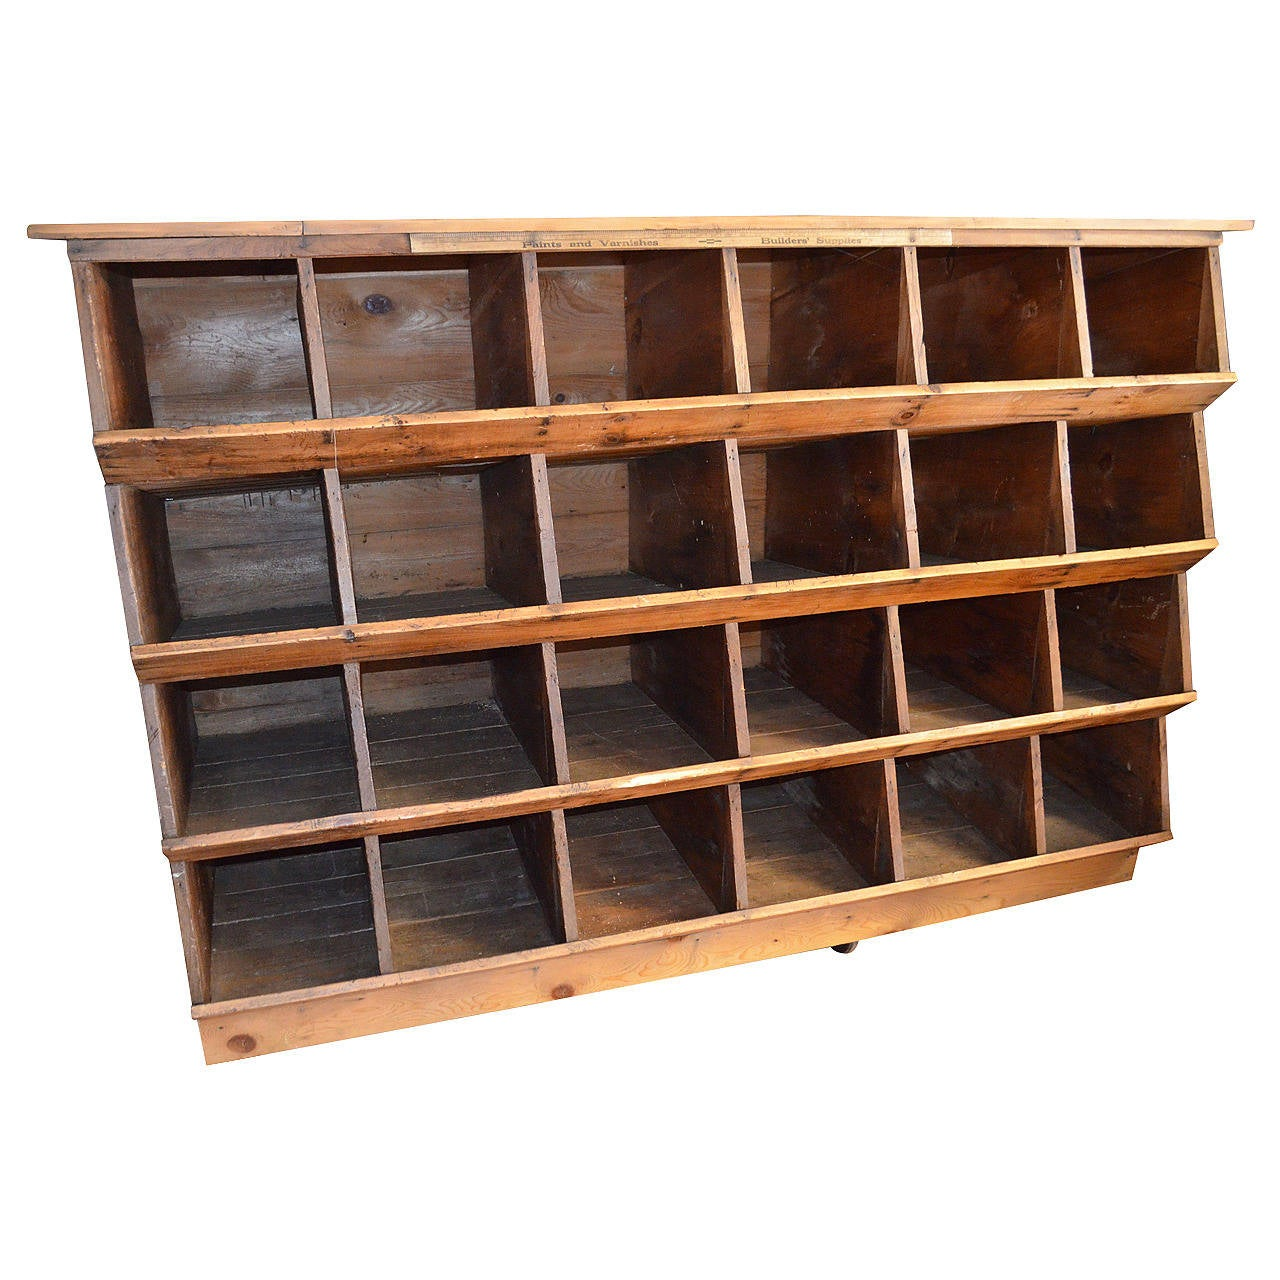 Storage Shelving Unit Of Wood Was Once Chicken Nesting Box